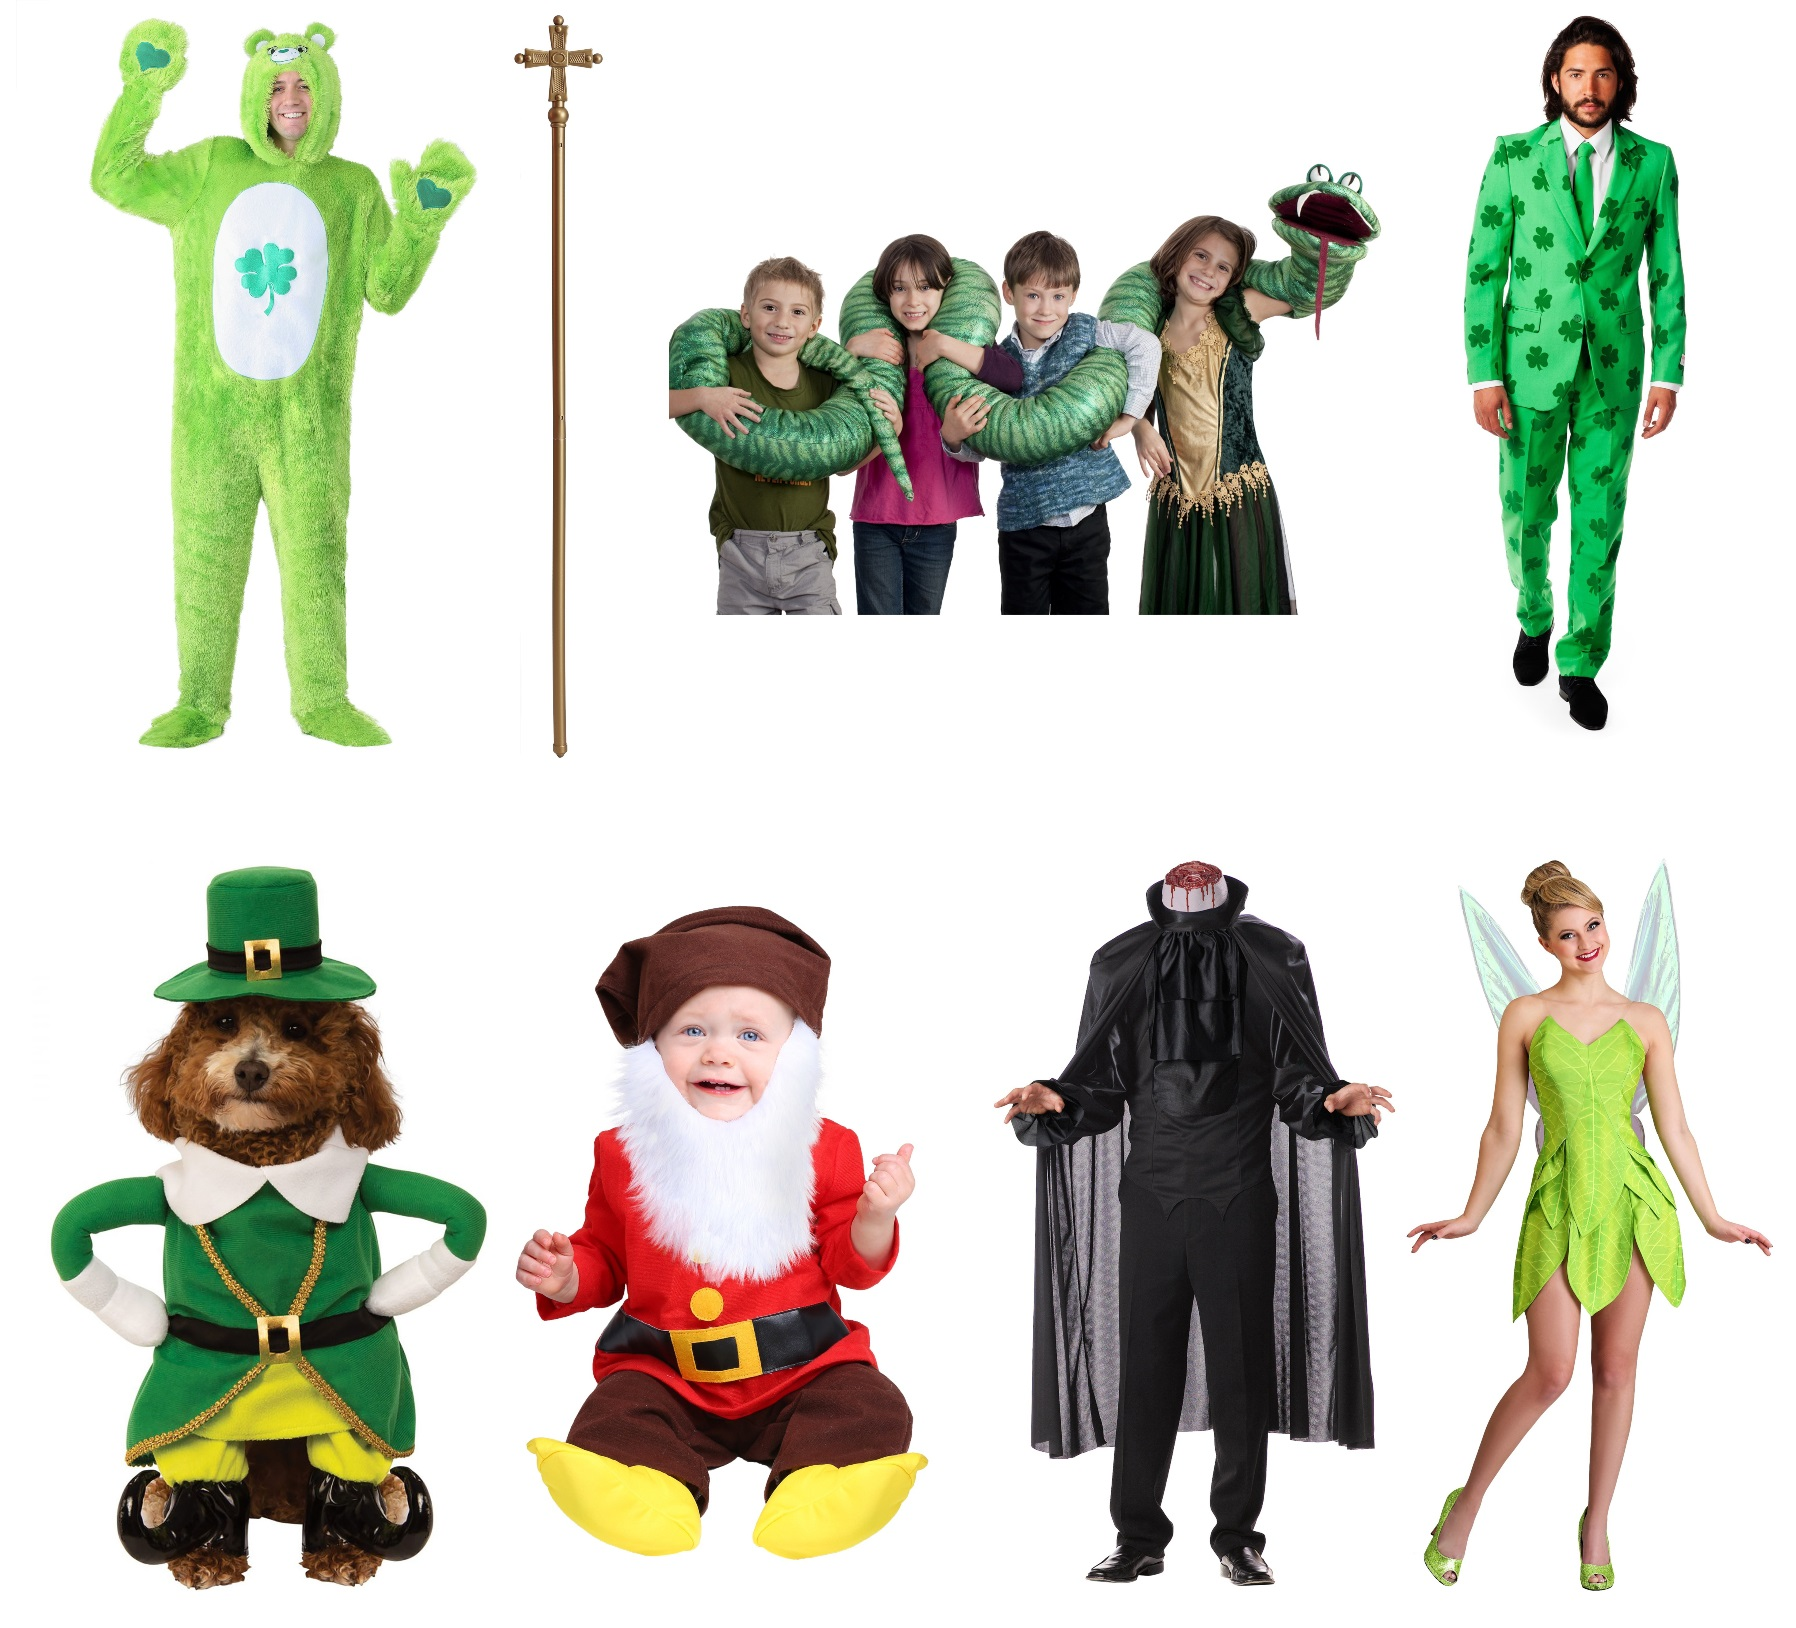 Unconventional St. Patrick's Day Costumes